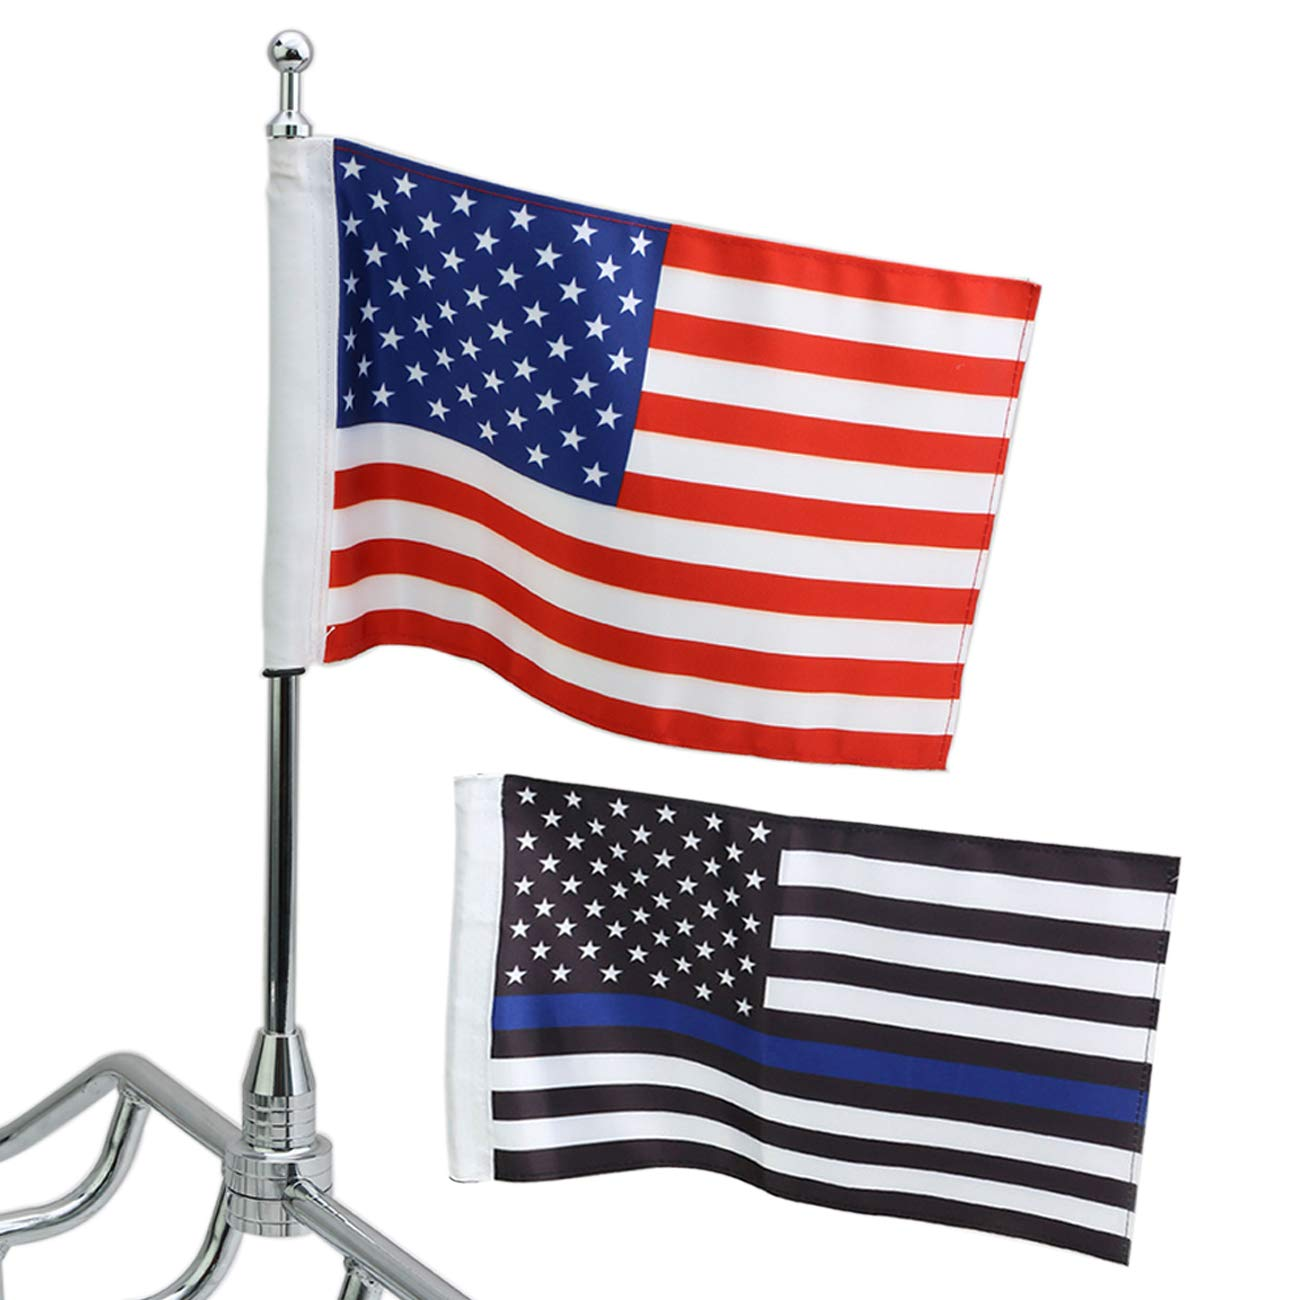 1 Pair Motorcycle Flag Pole Mount & 6 x 10 Flag American USA Fit for Honda Yamaha Harley Davidson BOXATDOOR